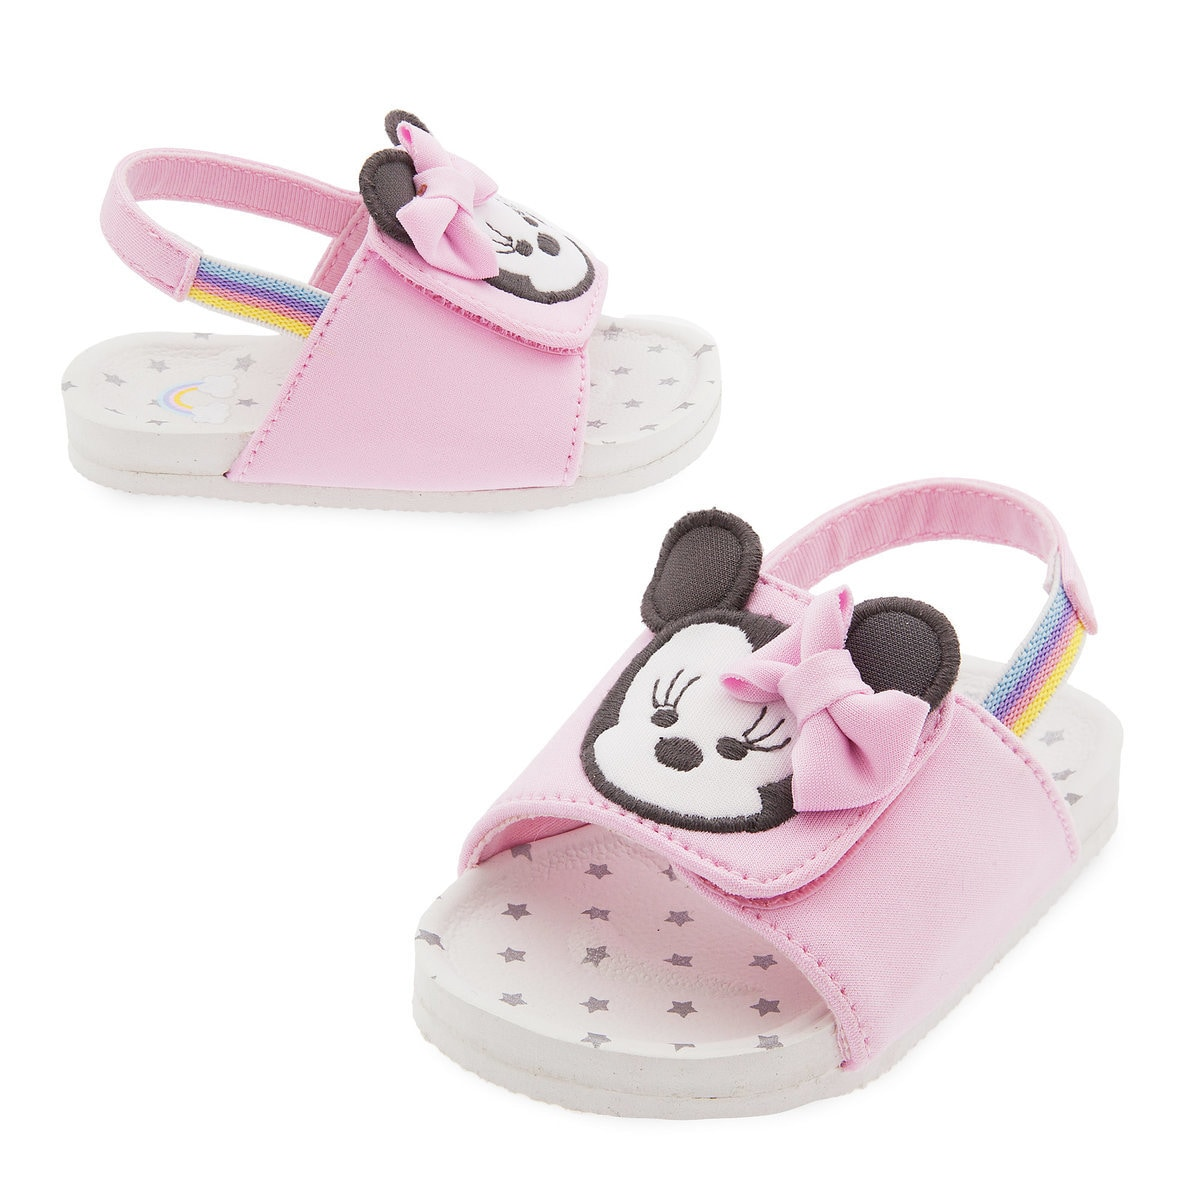 6be23ec44 Product Image of Minnie Mouse Swim Shoes for Baby # 1